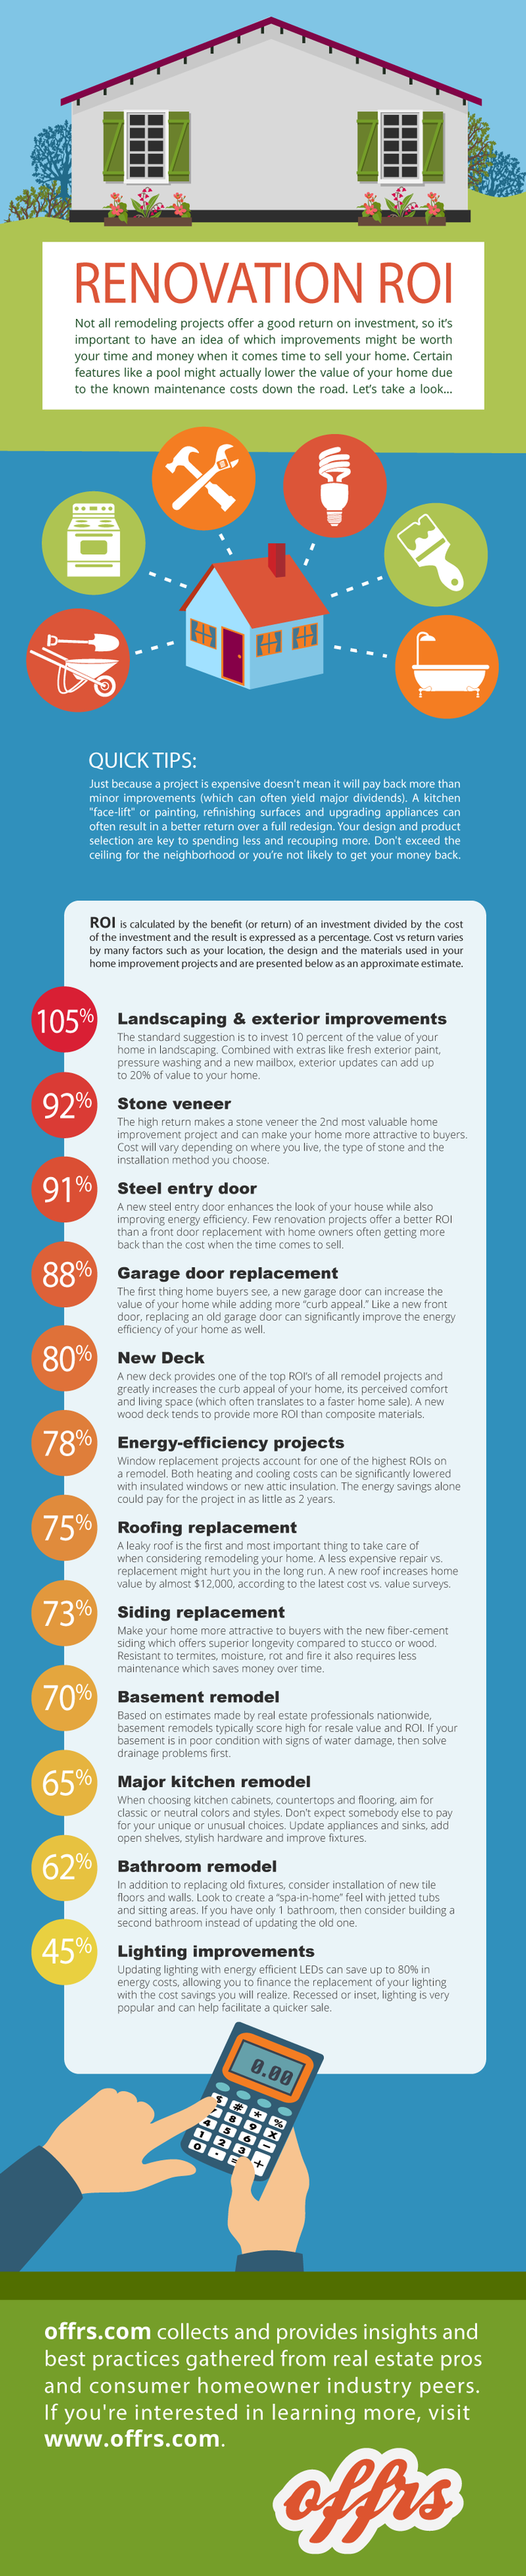 offrs reviews agent feedback on home renovation ROI (a list of the most important projects)!